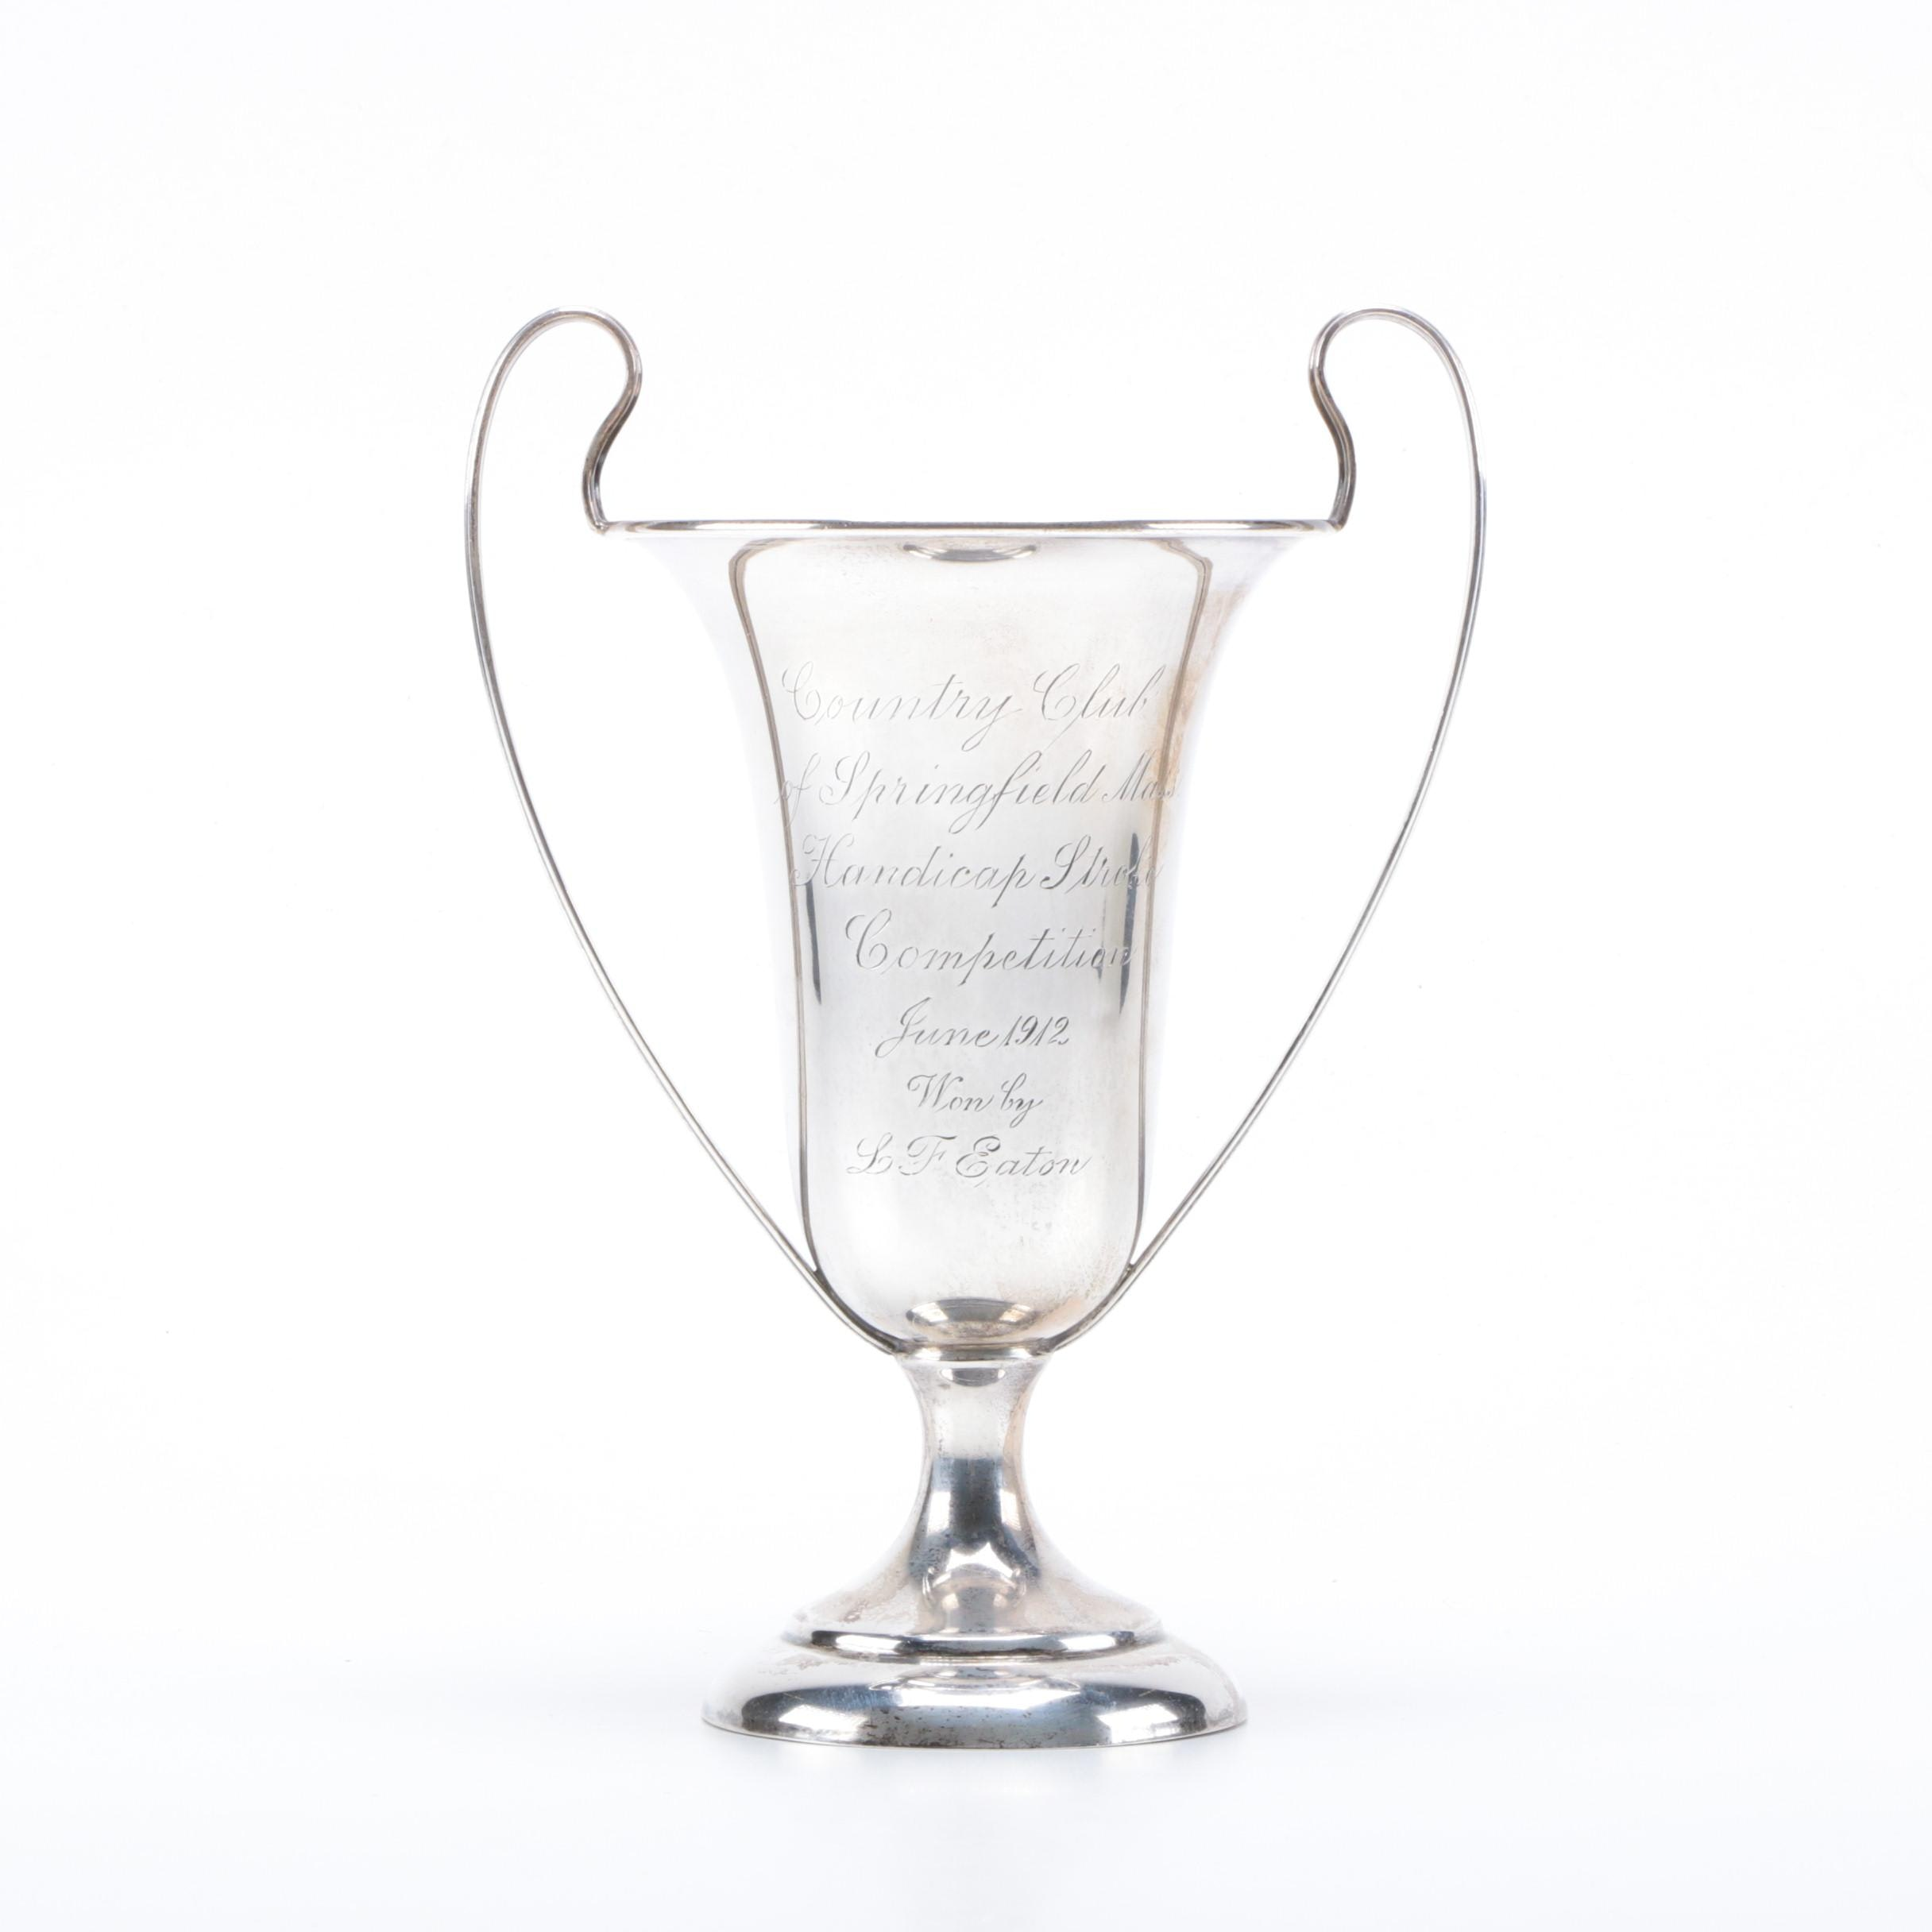 Antique Sterling Silver Country Club of Springfield Golf Trophy